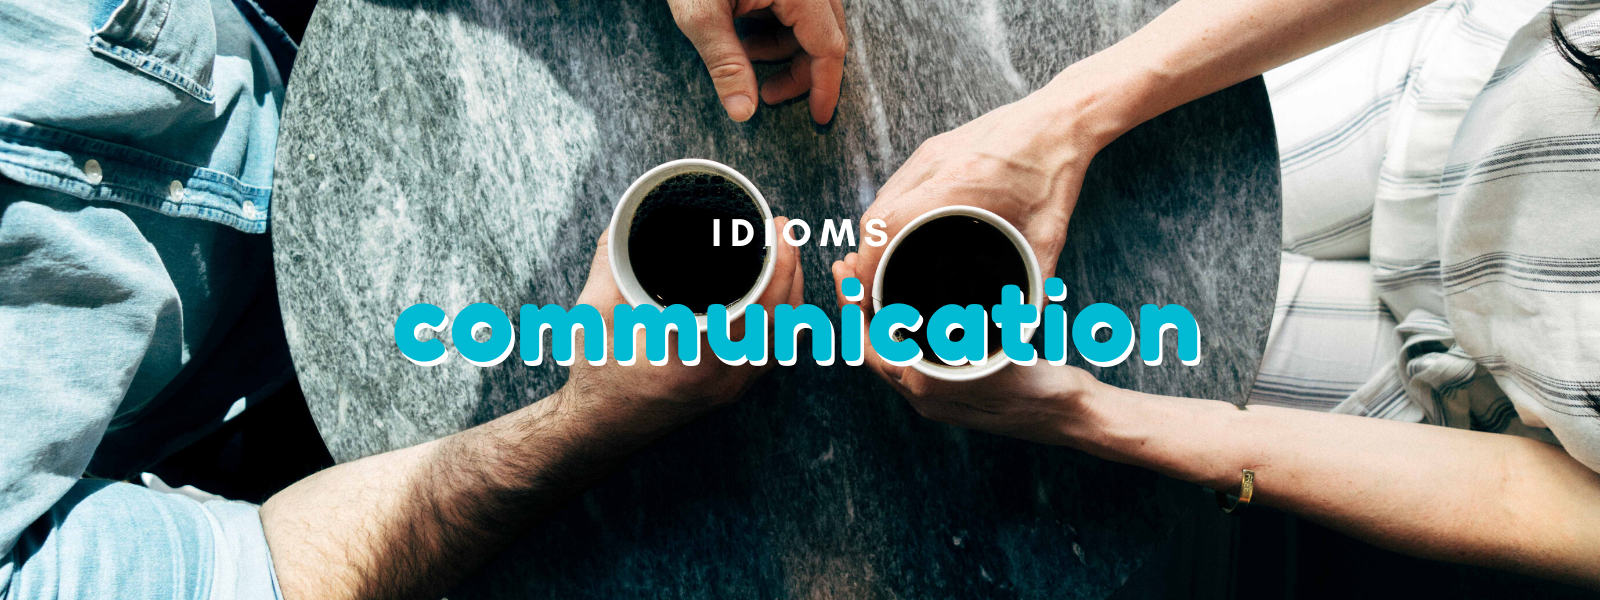 Talaera Business Idioms Communication